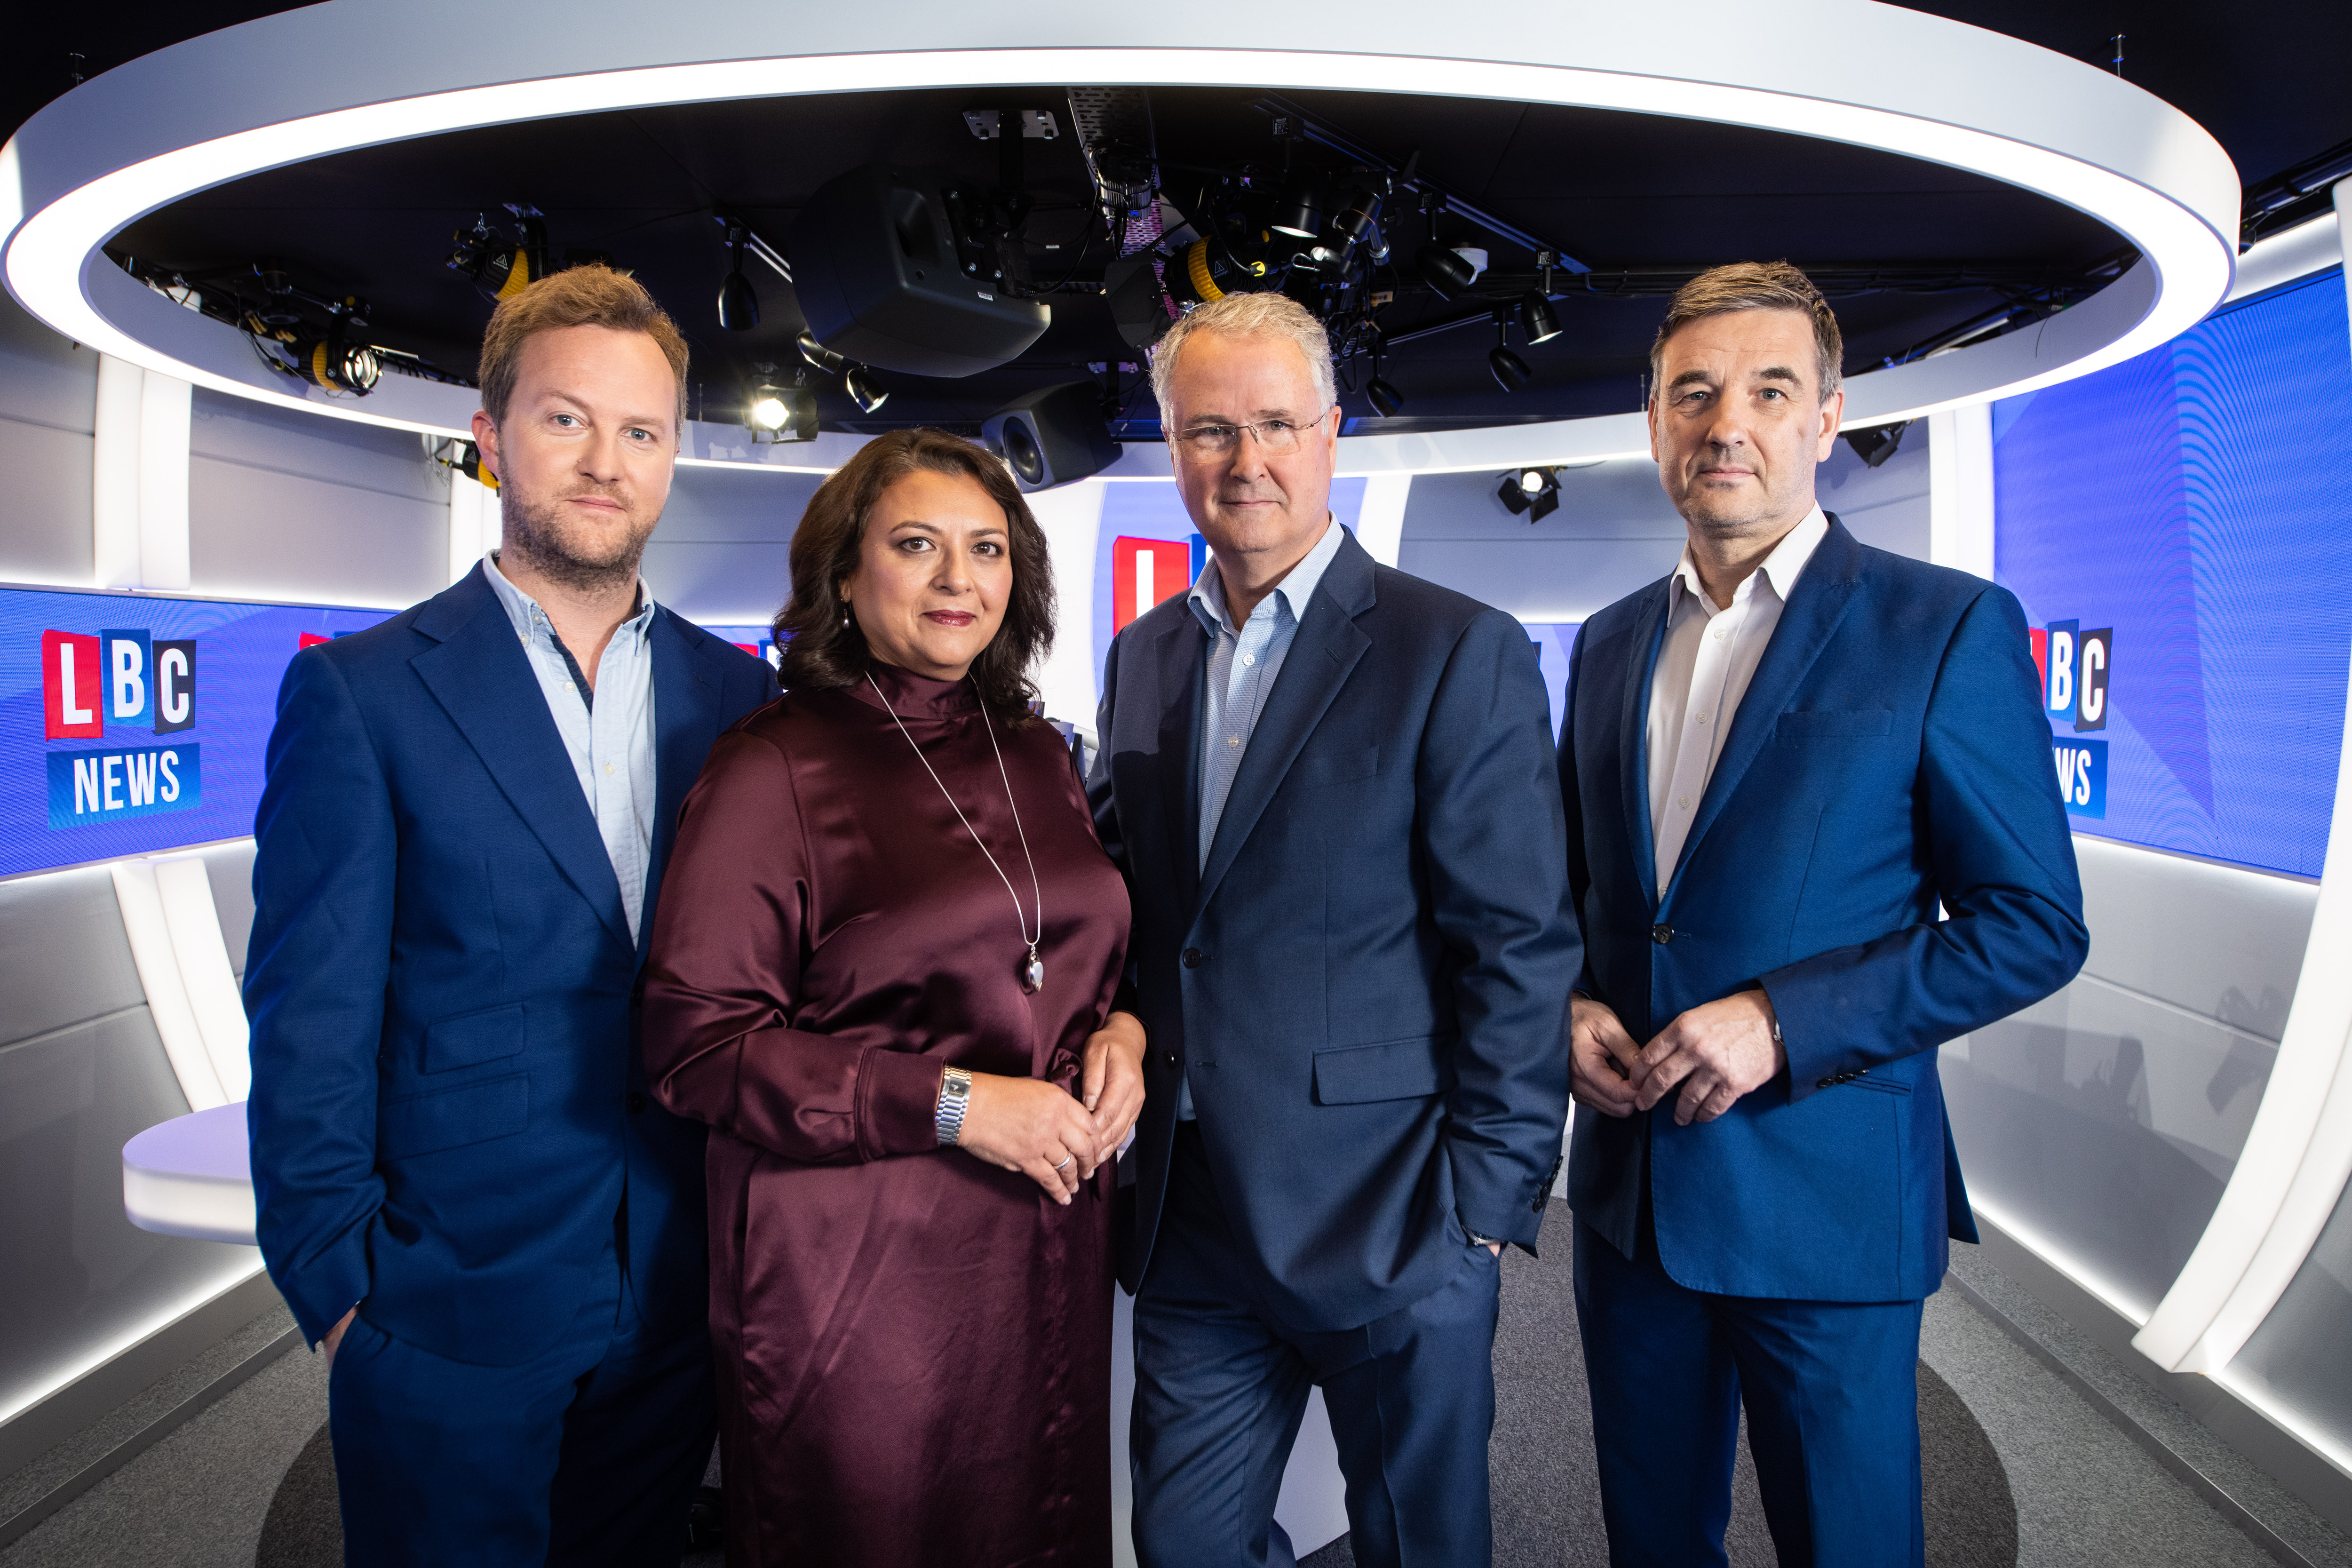 Global launches 24-hour rolling news radio station LBC News